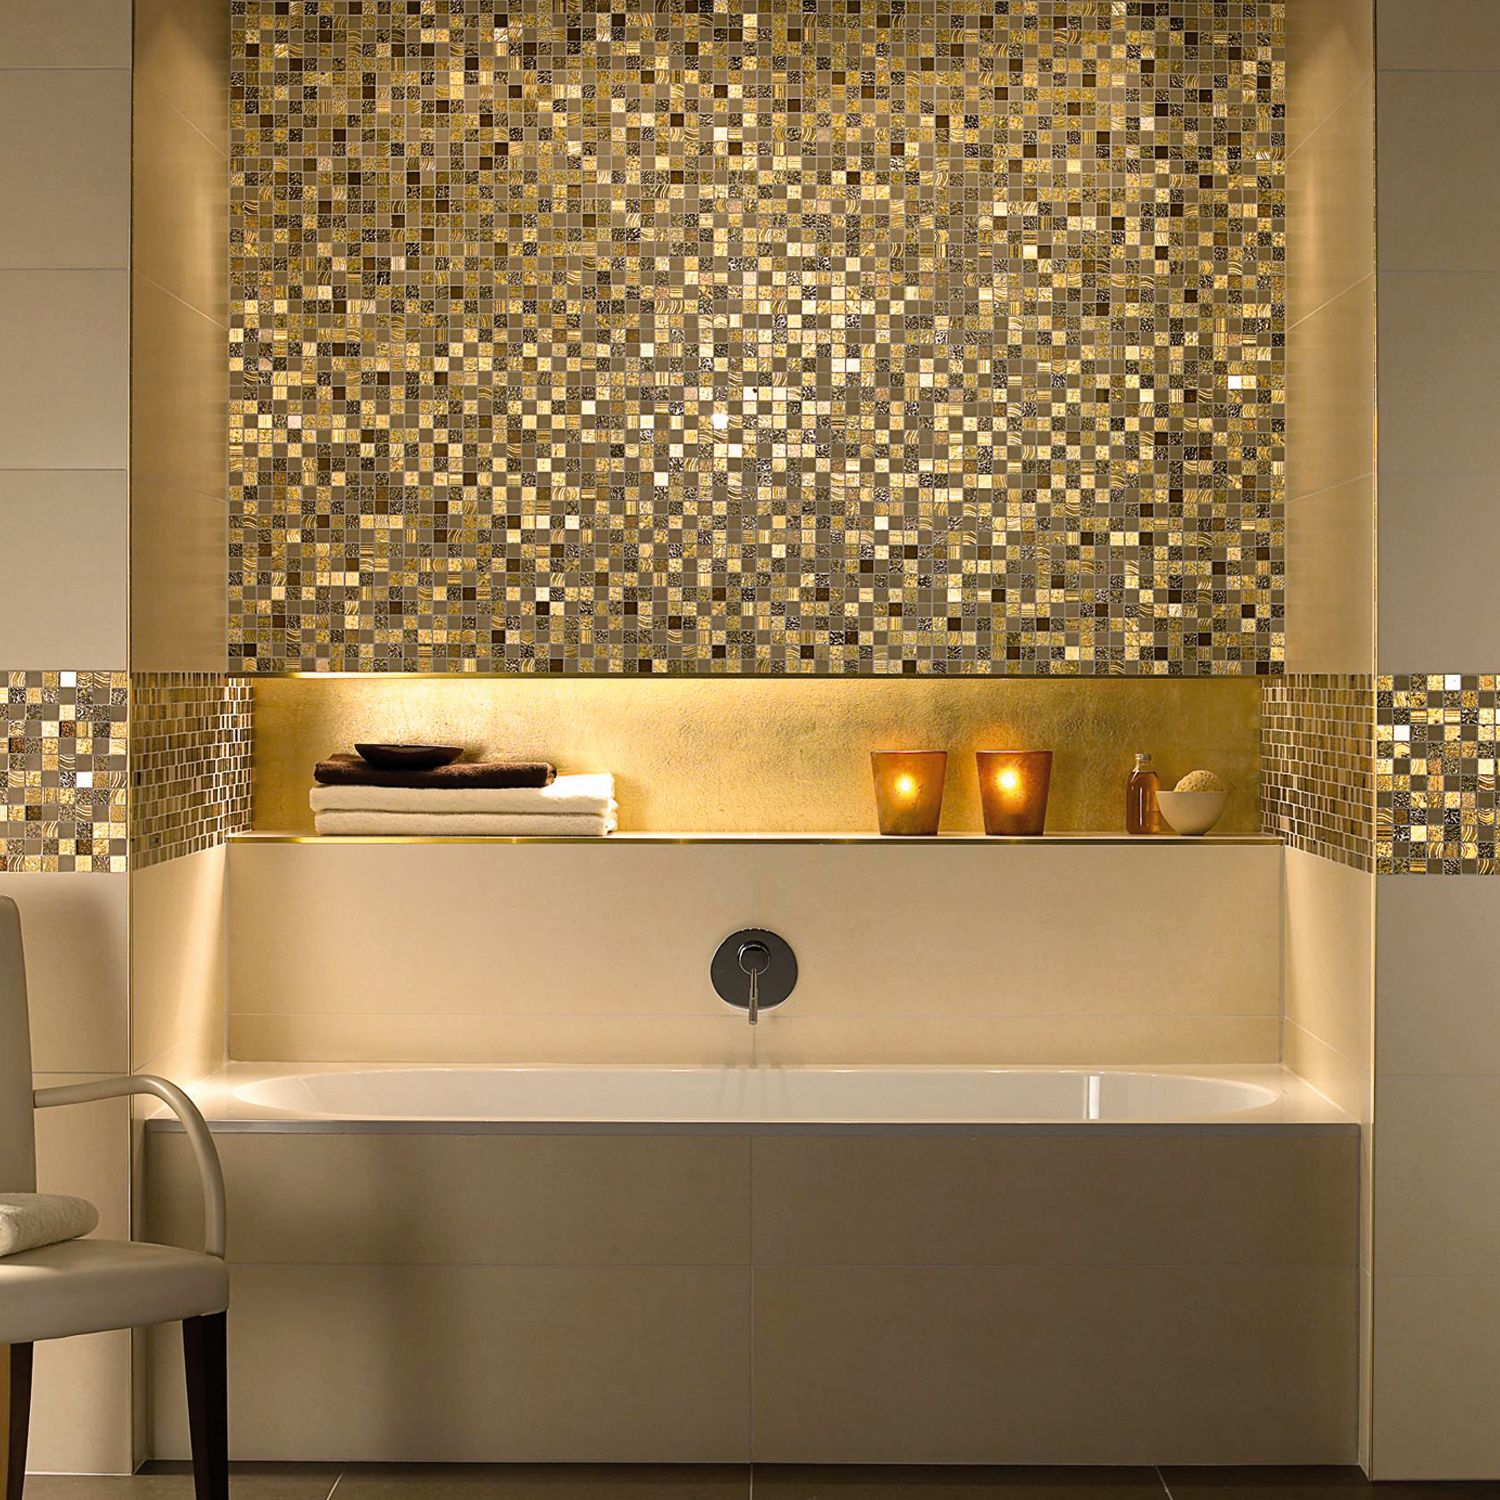 bathroom, golden bathroom, gold,maison valentina, bathub, mirror, rug, tap, bathroom decoration, bathroom decor bathroom 5 Ideas to Add a Touch of Gold to Your Bathroom 5 ideas to add a touch of gold to your bathroom  Schluter